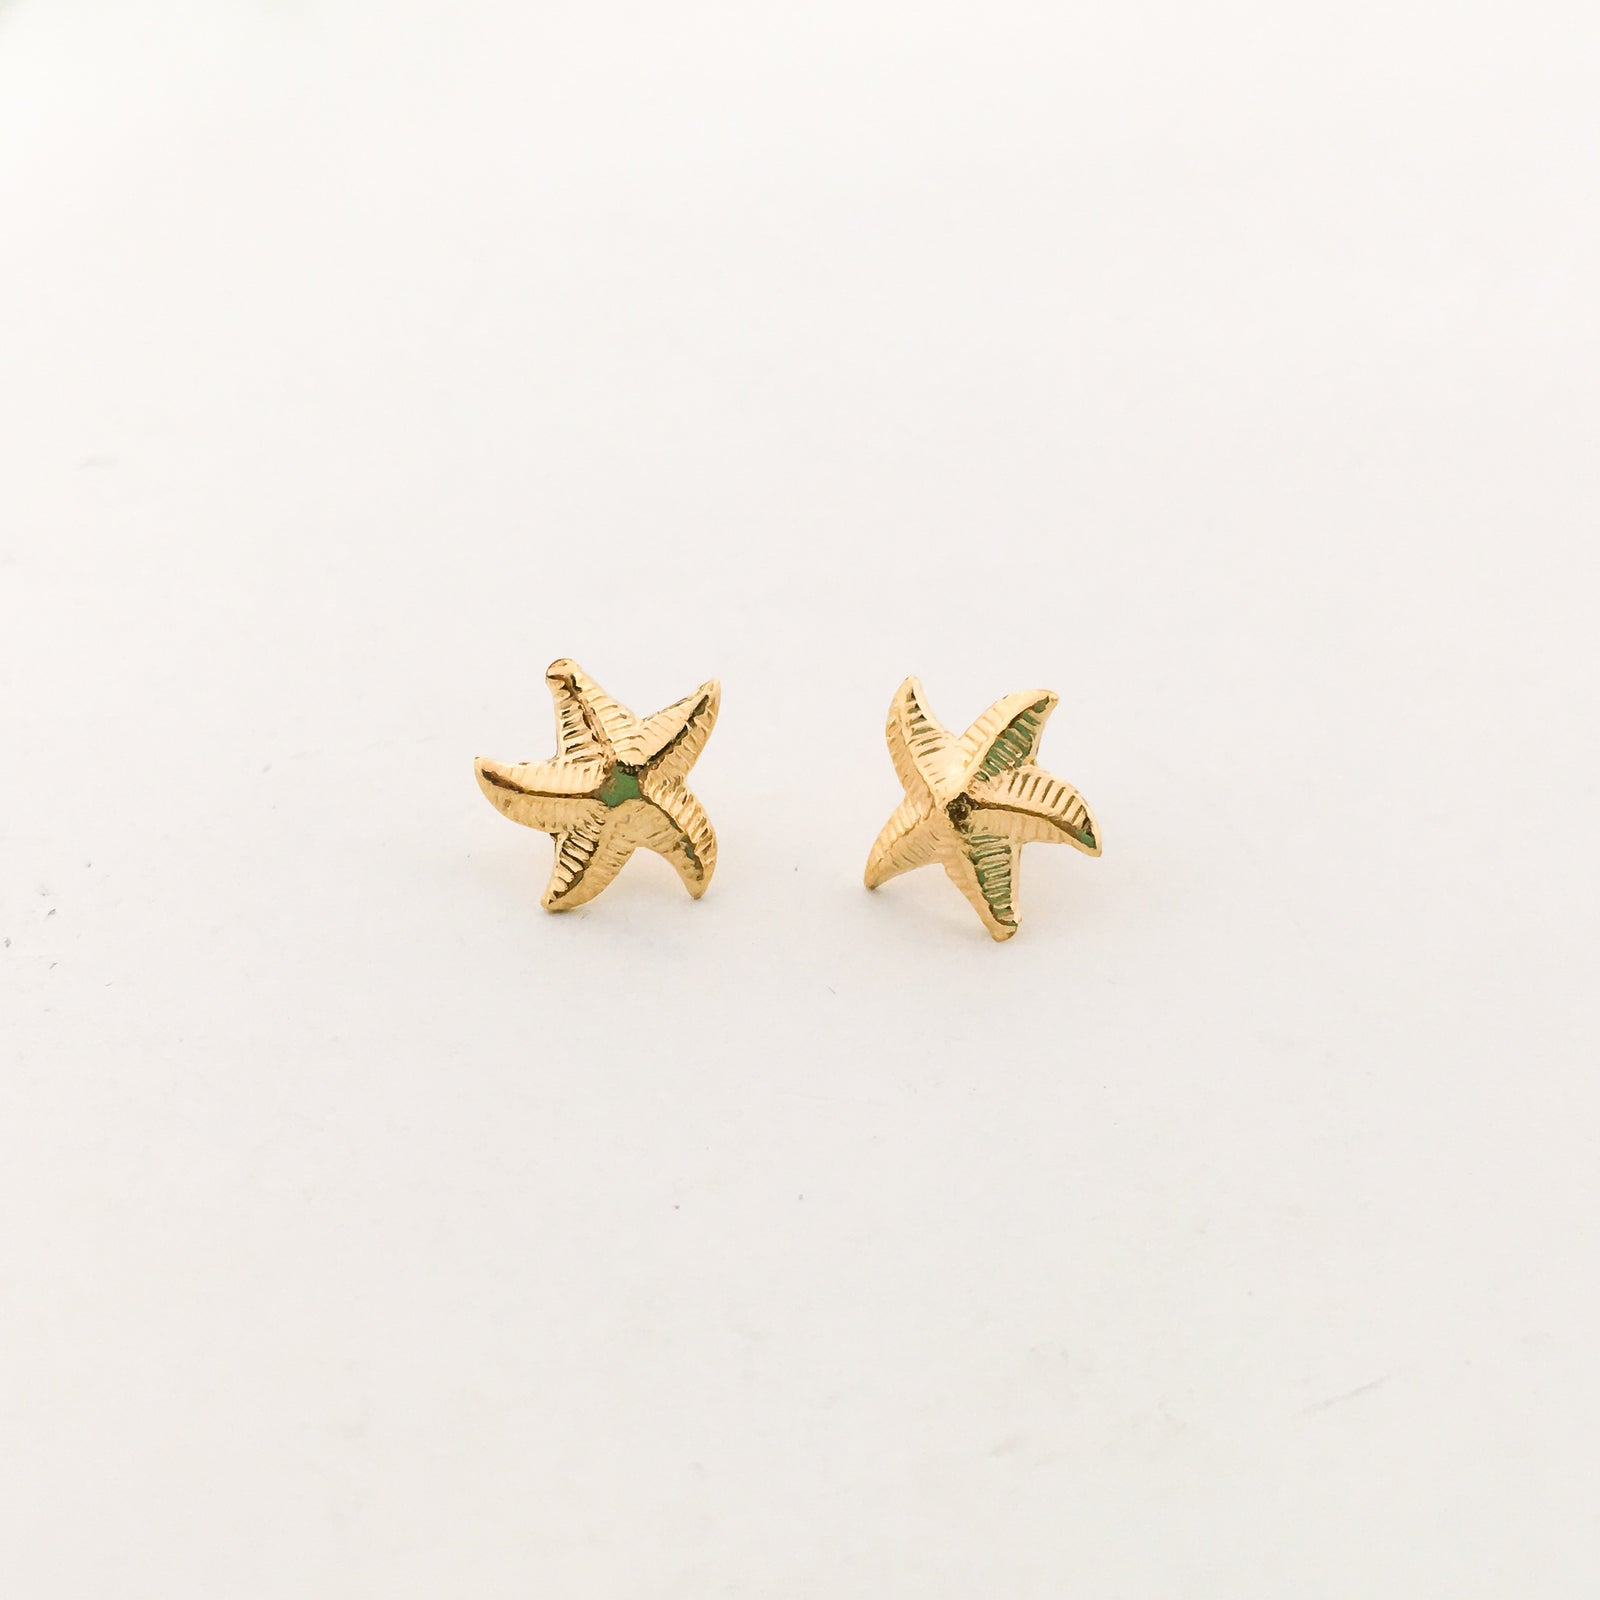 STARFISH STUD EARRINGS | 14K GOLD-FILLED